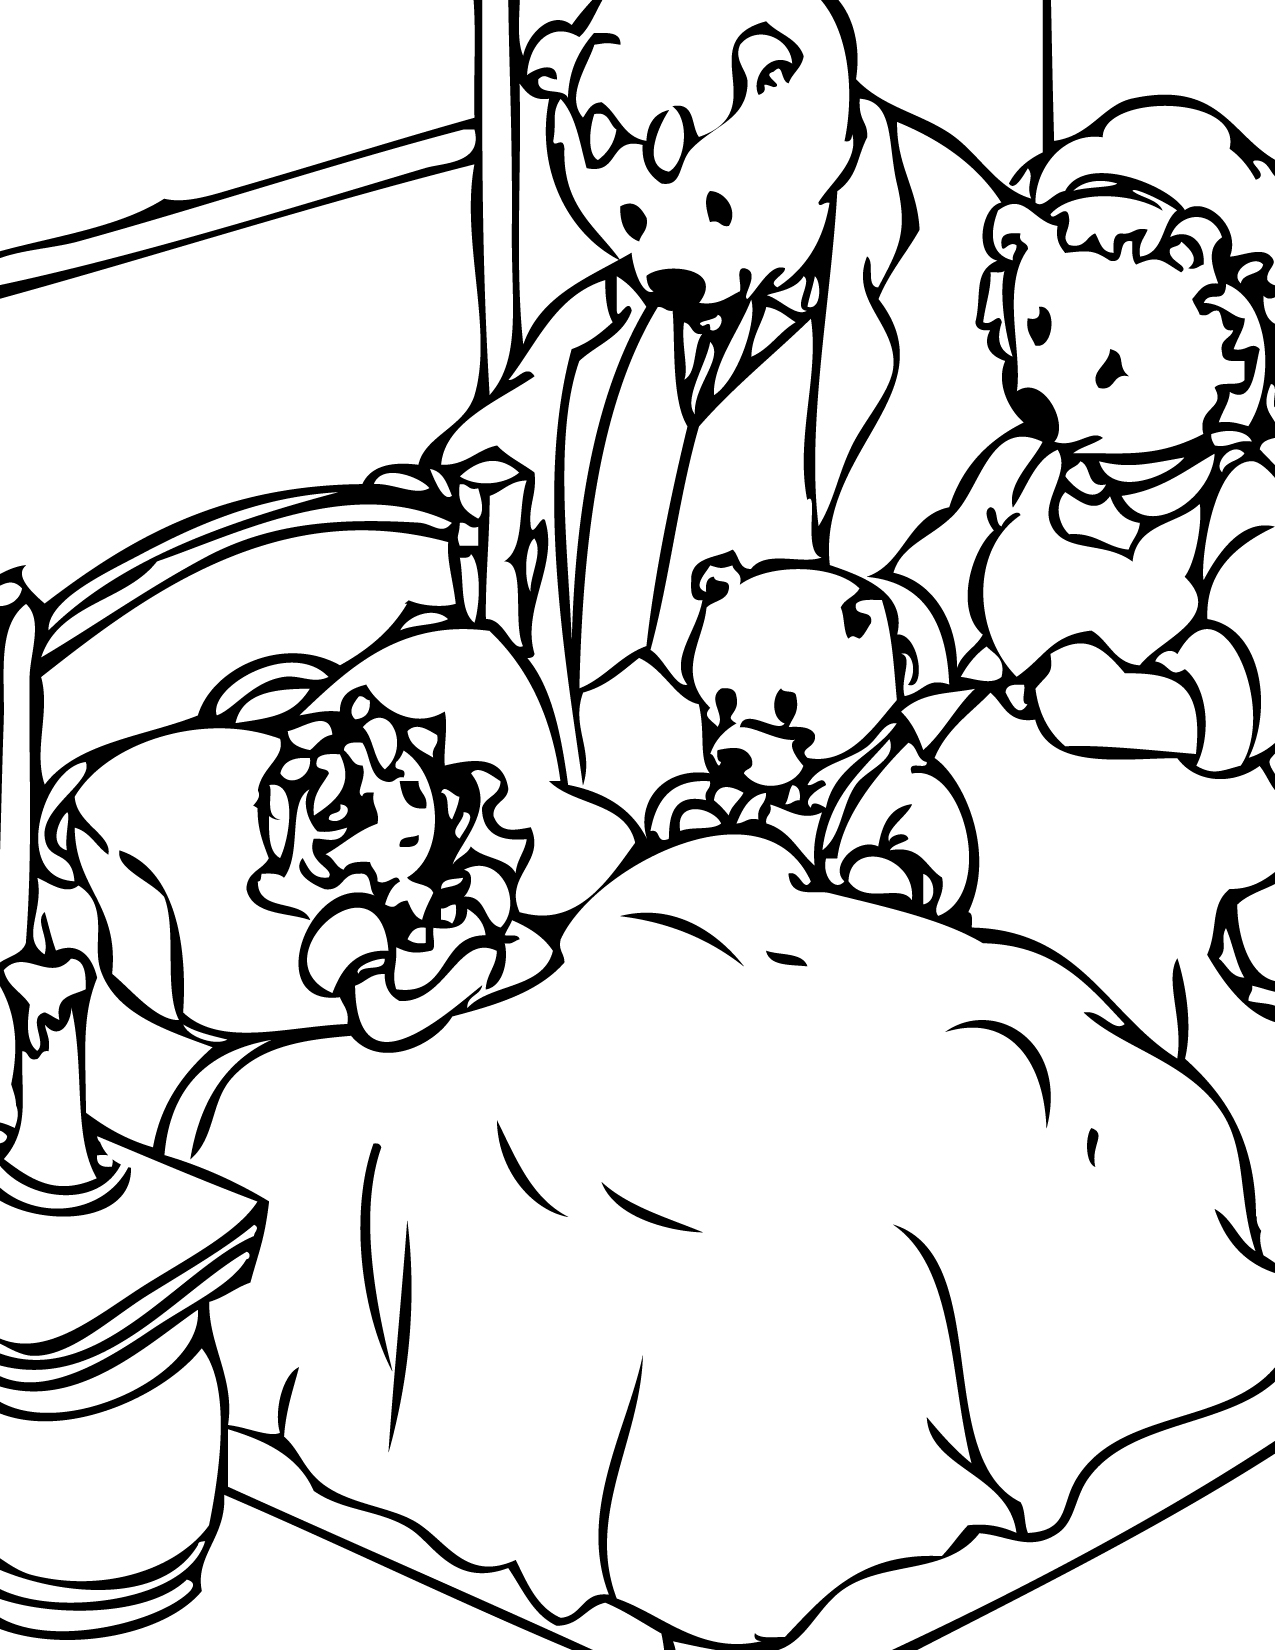 Free Goldilocks And The Three Bears Coloring Pages